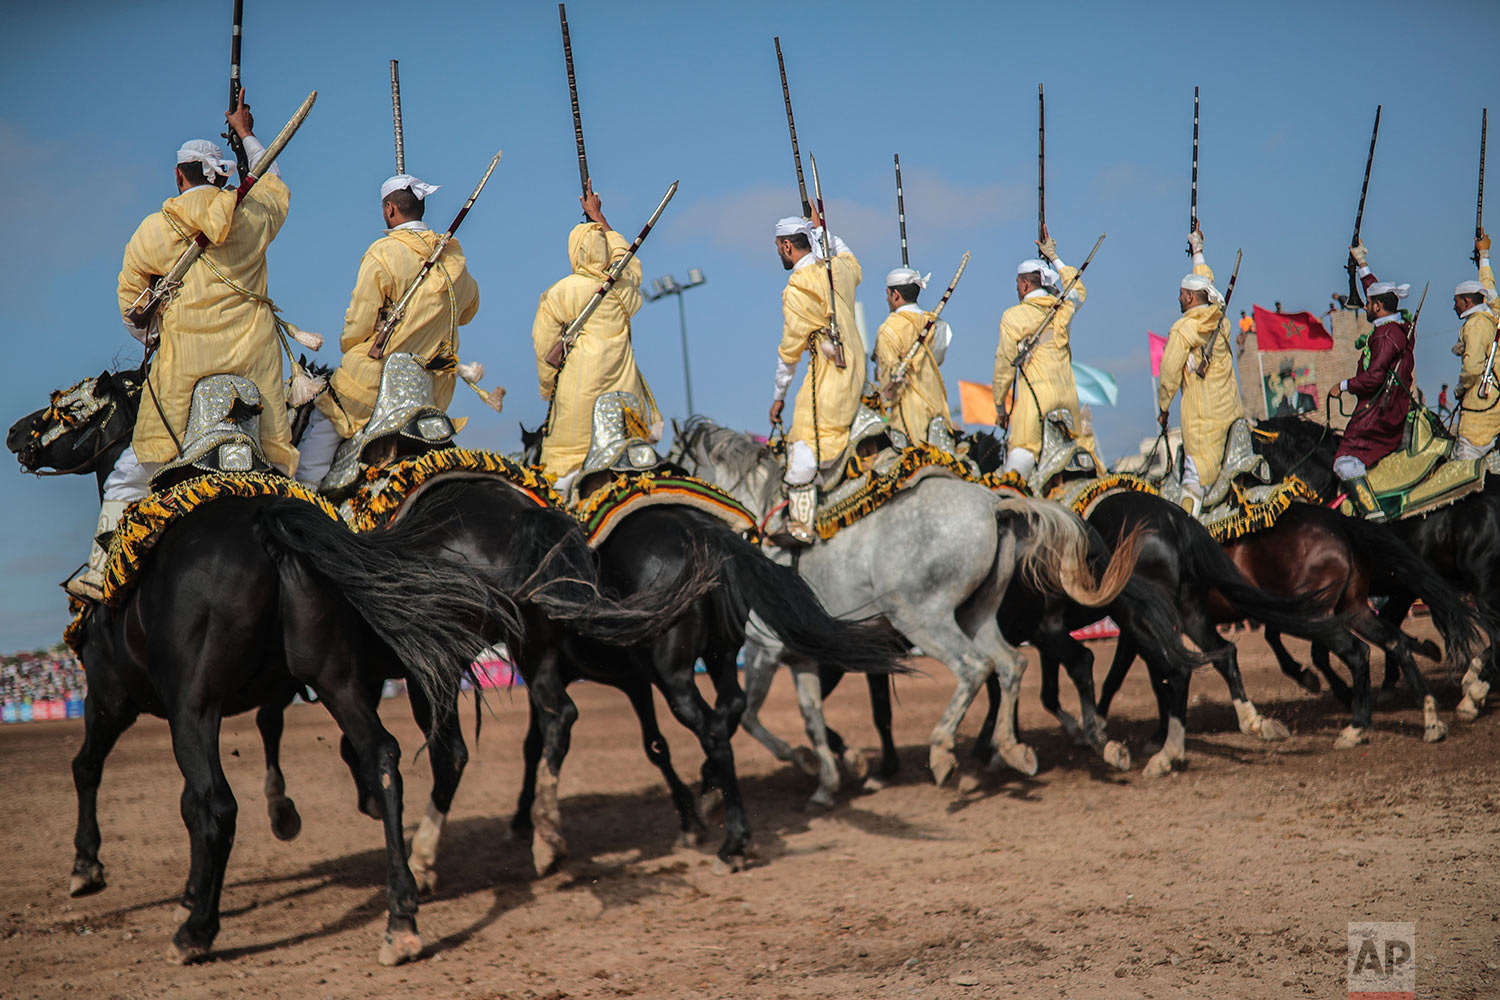 A troupe charges and hold their rifles before firing, during Tabourida, a traditional horse riding show also known as Fantasia, in the coastal town of El Jadida, Morocco, July 25, 2019. (AP Photo/Mosa'ab Elshamy)